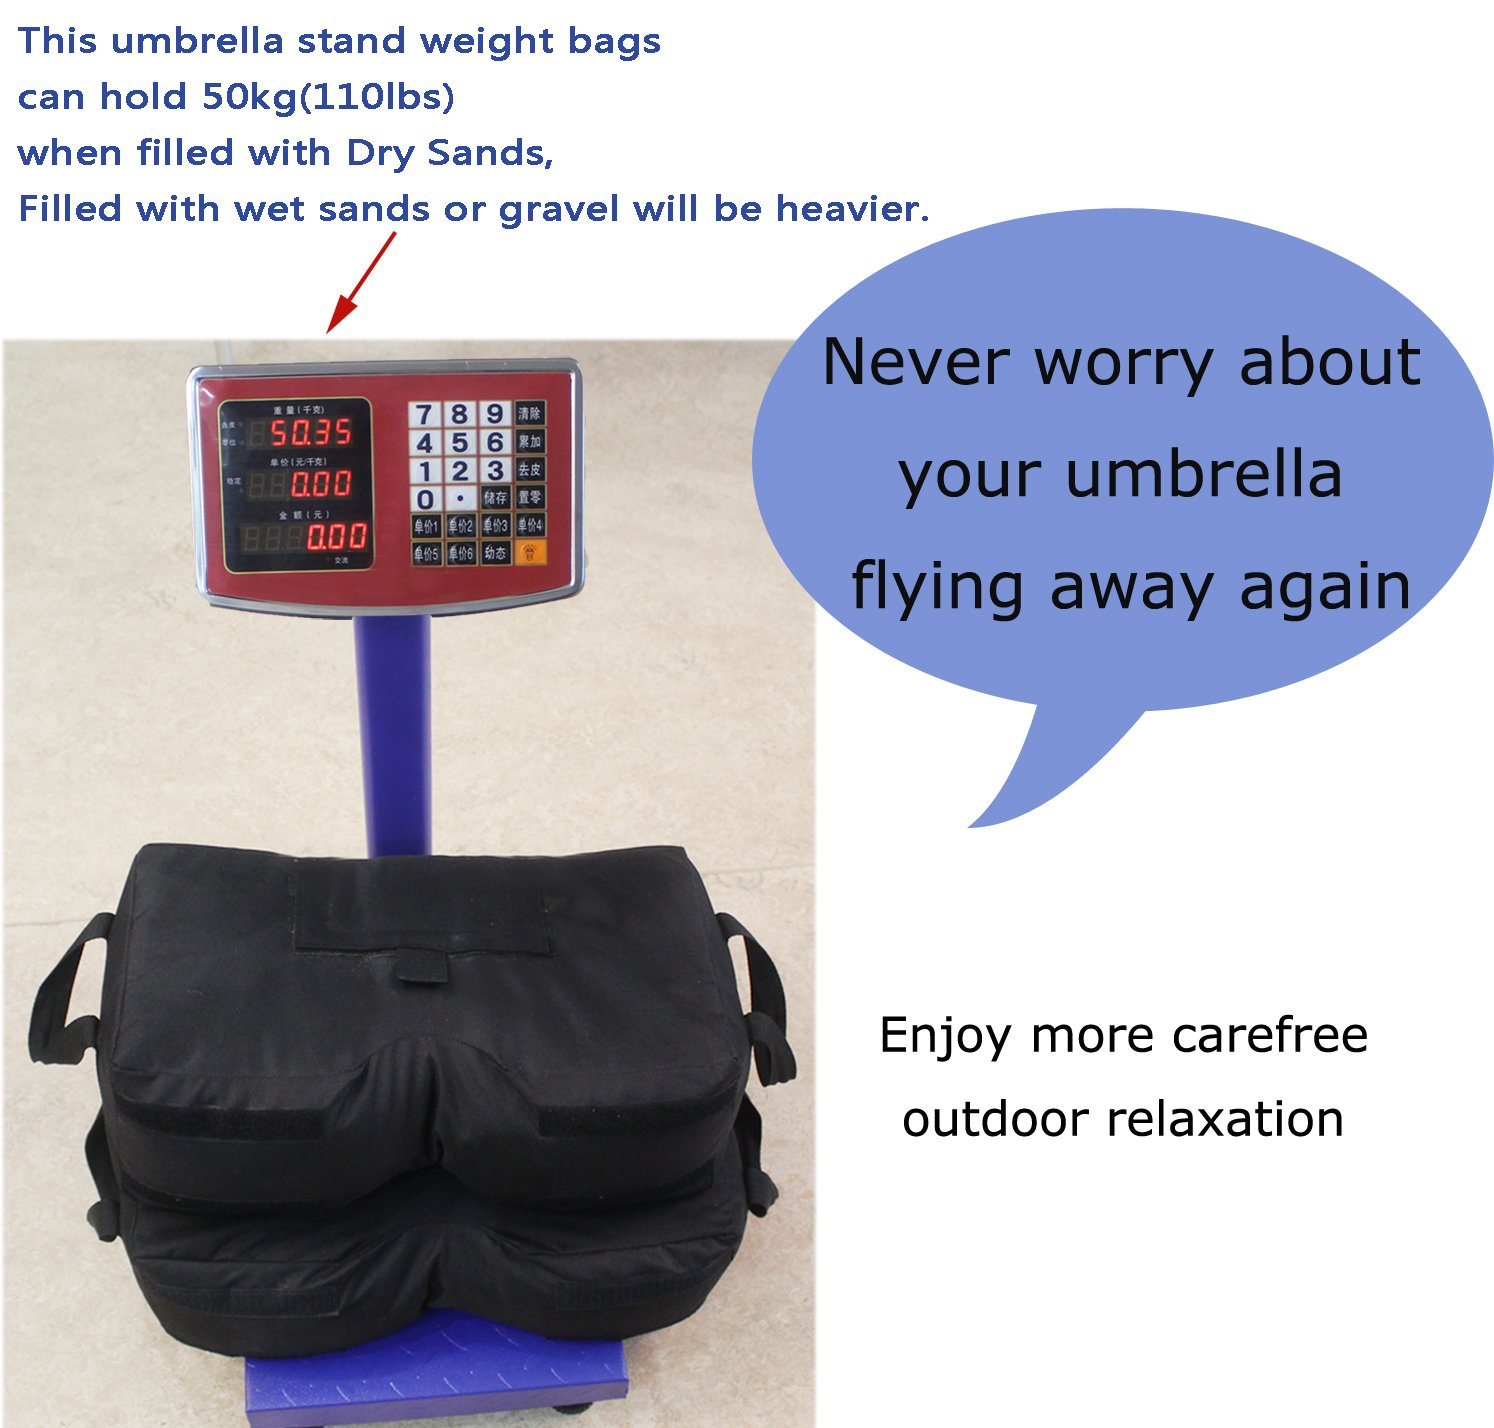 CELEISITE 2-piece Umbrella BASE WEIGHT BAGS, Waterproof Umbrella Stand Weights, 18'' Weight Bags with Shovel for any Offset, Cantilever or Outdoor Patio Umbrella, Easy to Set up by celeisite (Image #7)